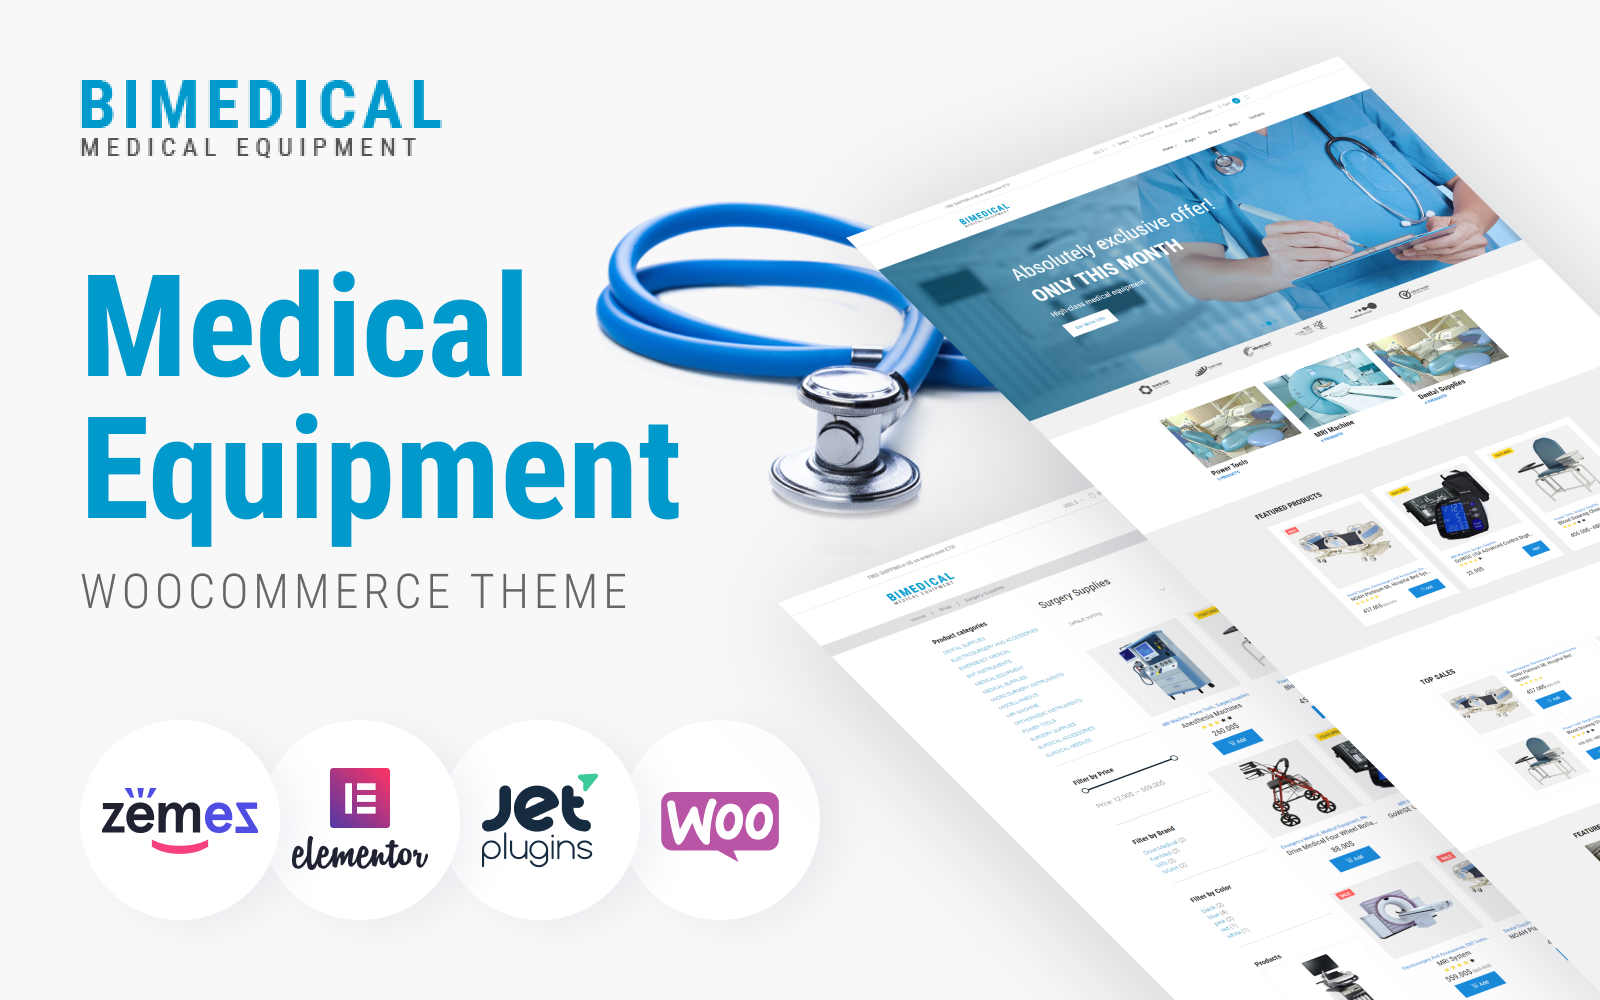 """Bimedical- Medical Equipment Responsive"" - адаптивний WooCommerce шаблон №64363"